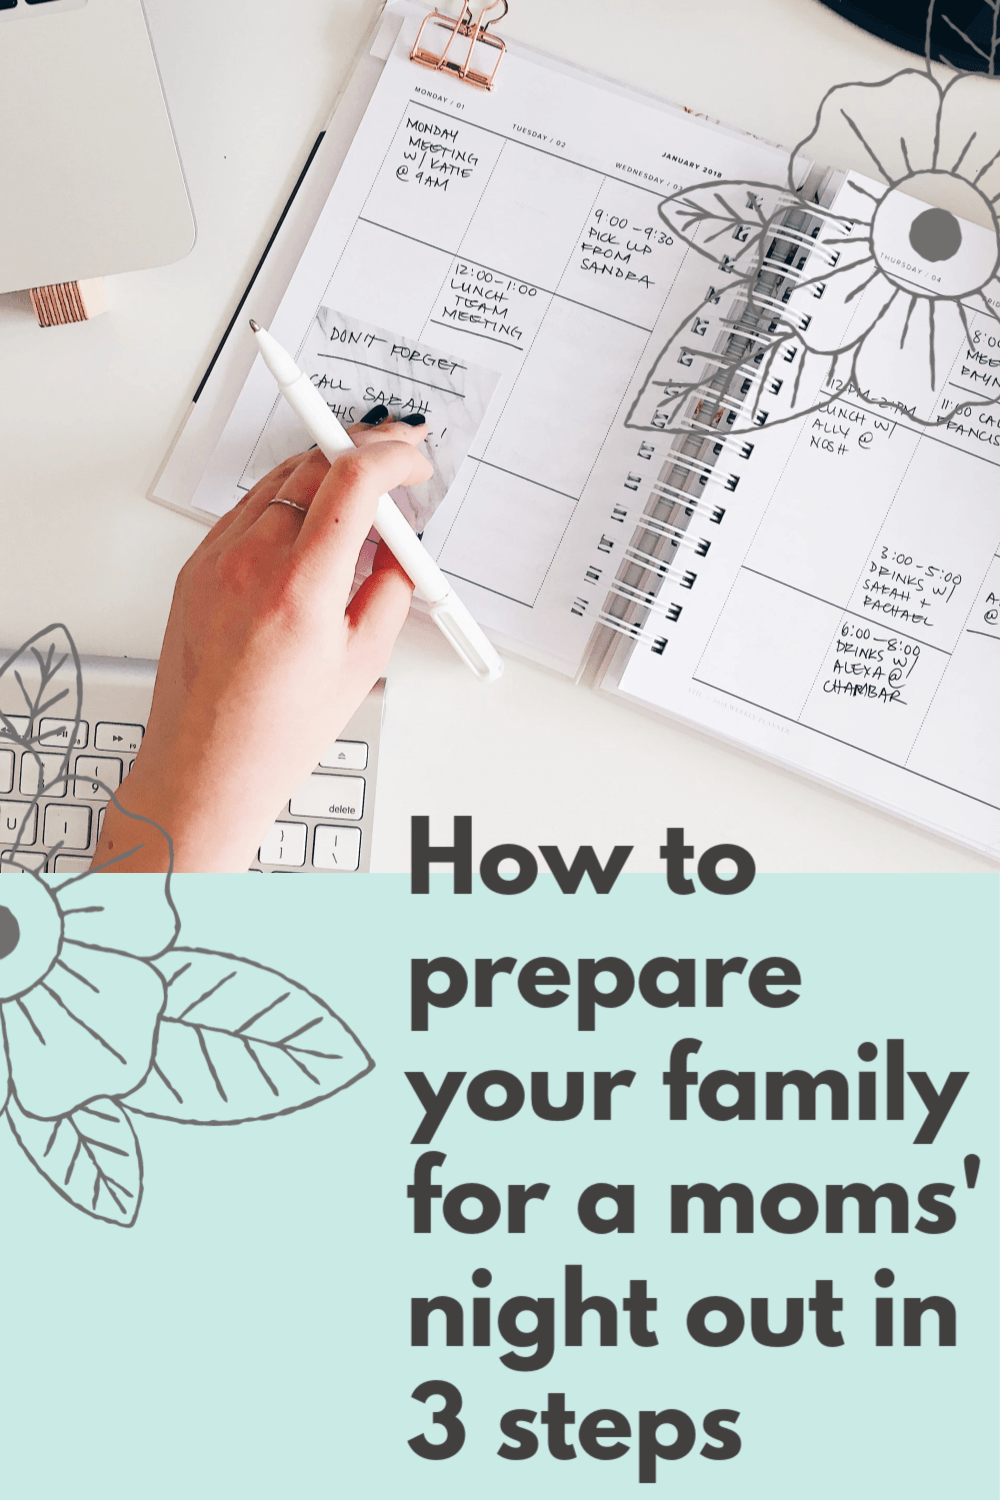 You want to go out with the gals but how do you get your family ready for a night without you? Here are three easy steps to prepare your family for a moms night out. #momsnightout #mom #family #parenting